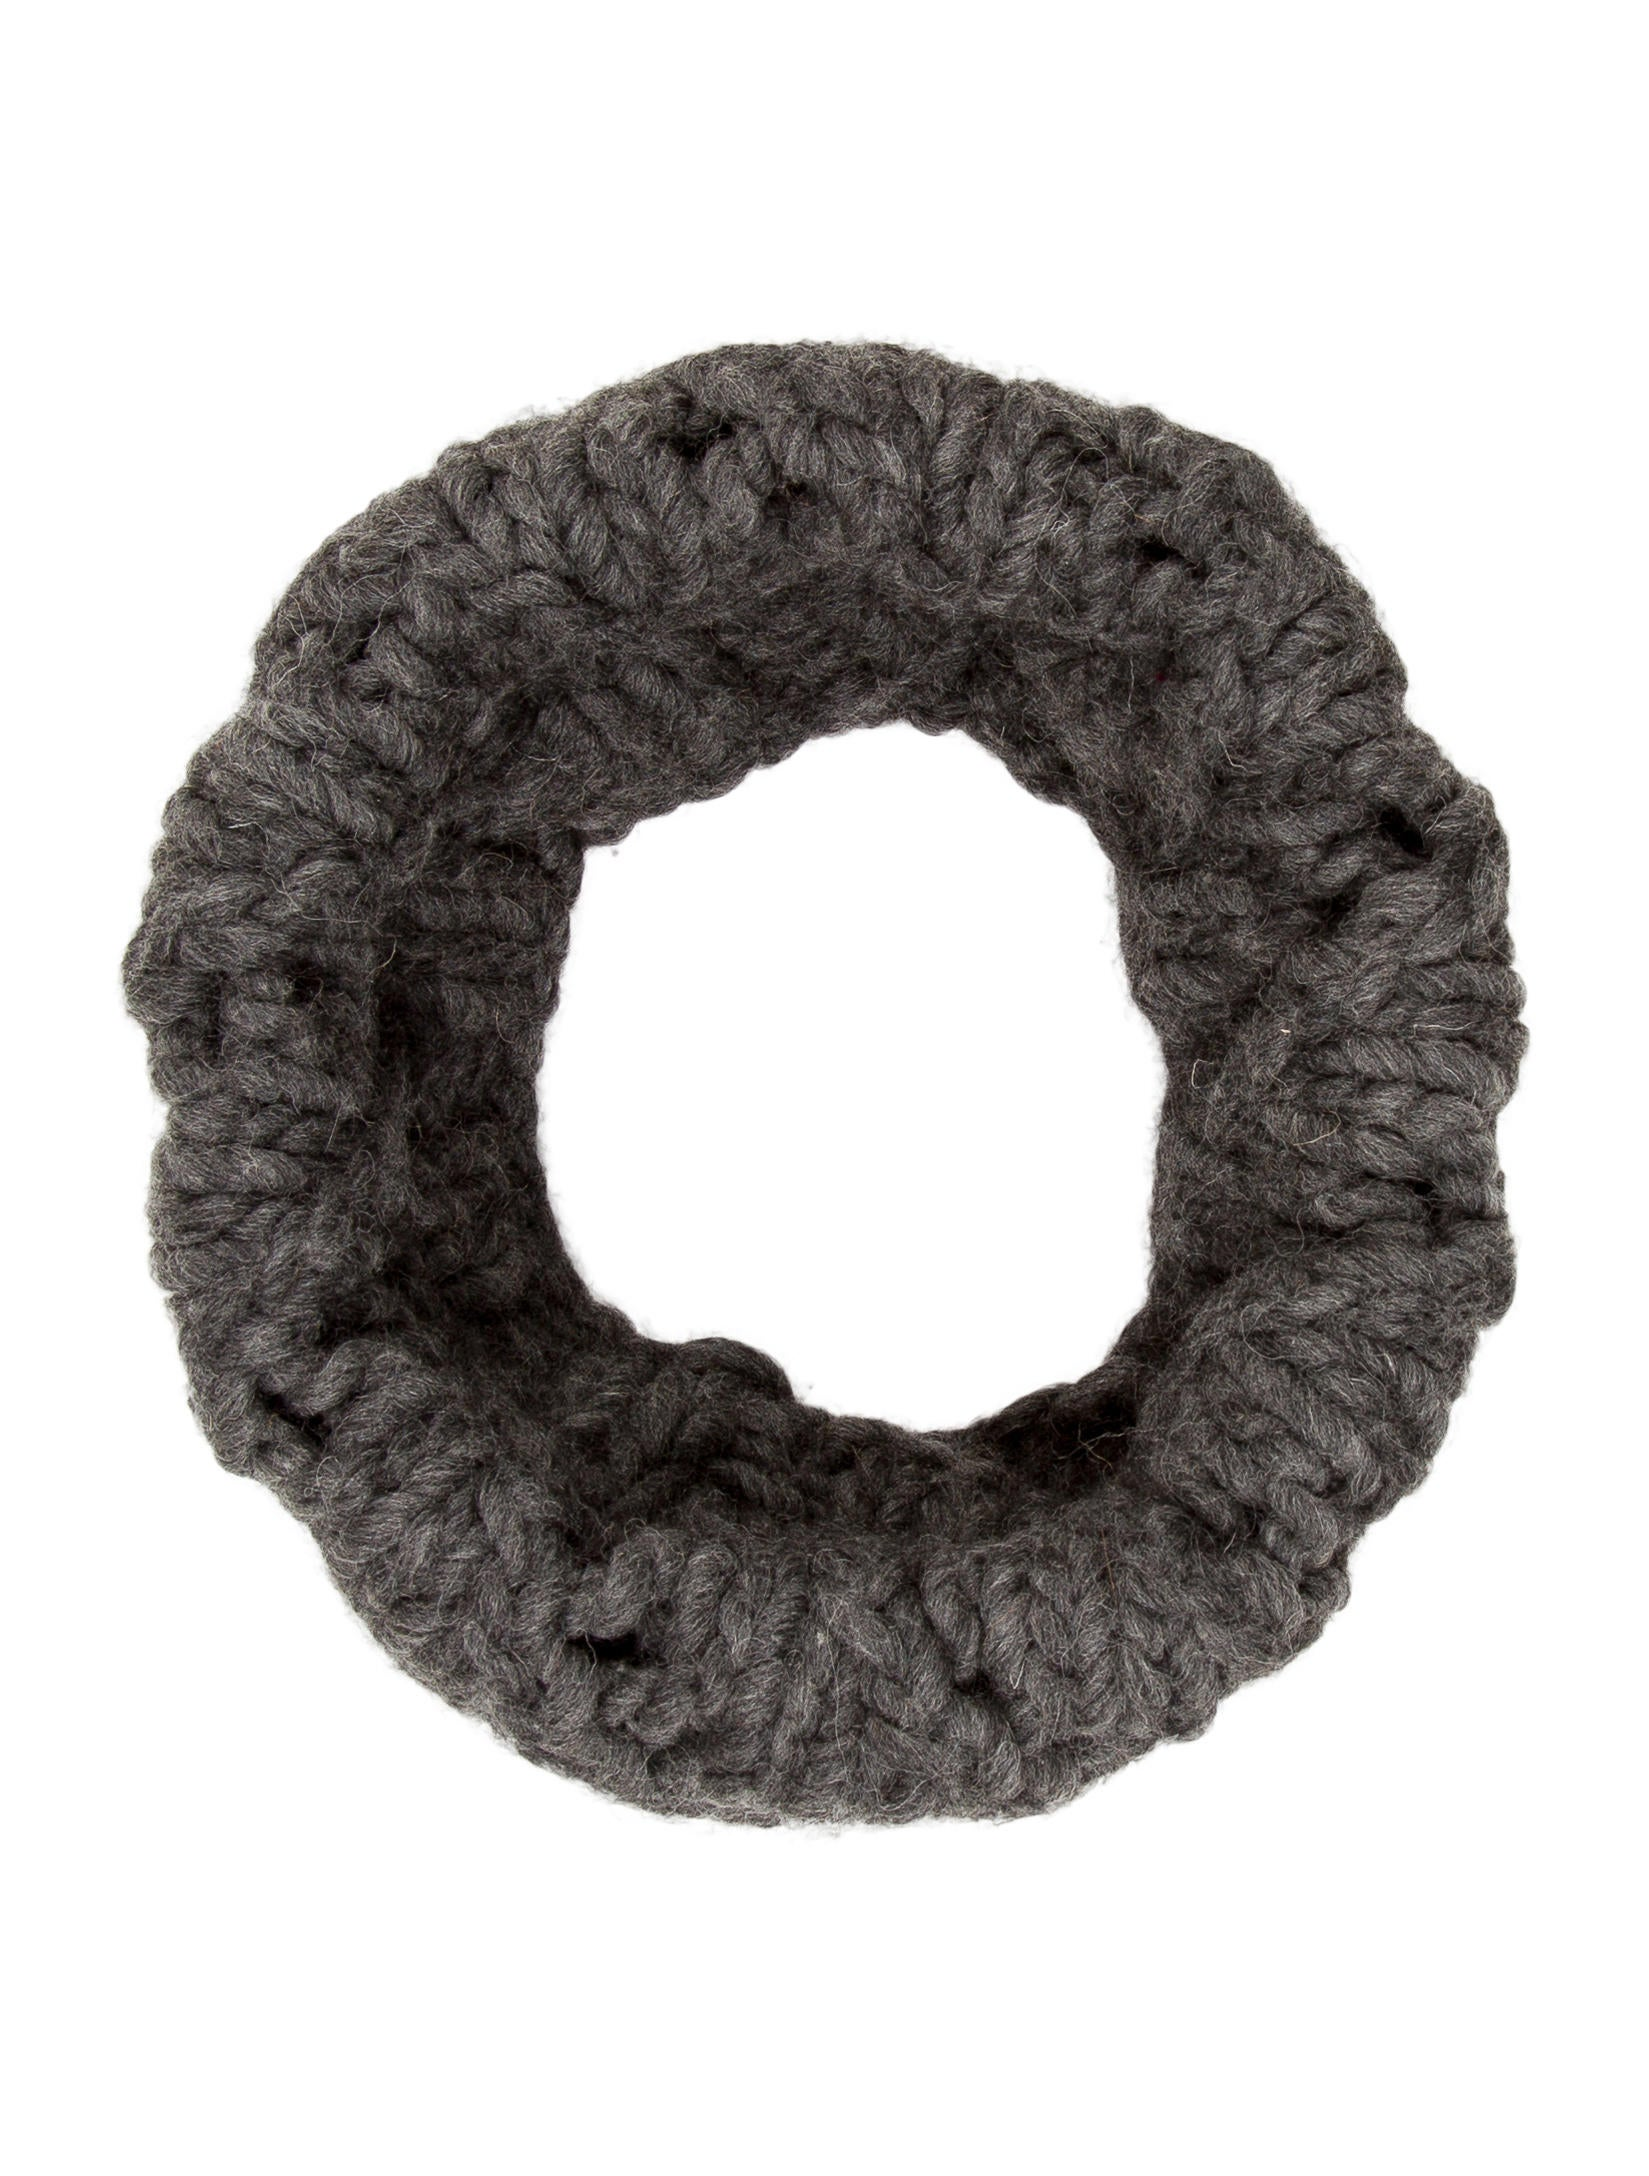 Eugenia Kim Wool Knit Snood - Accessories - WEU20497 The RealReal